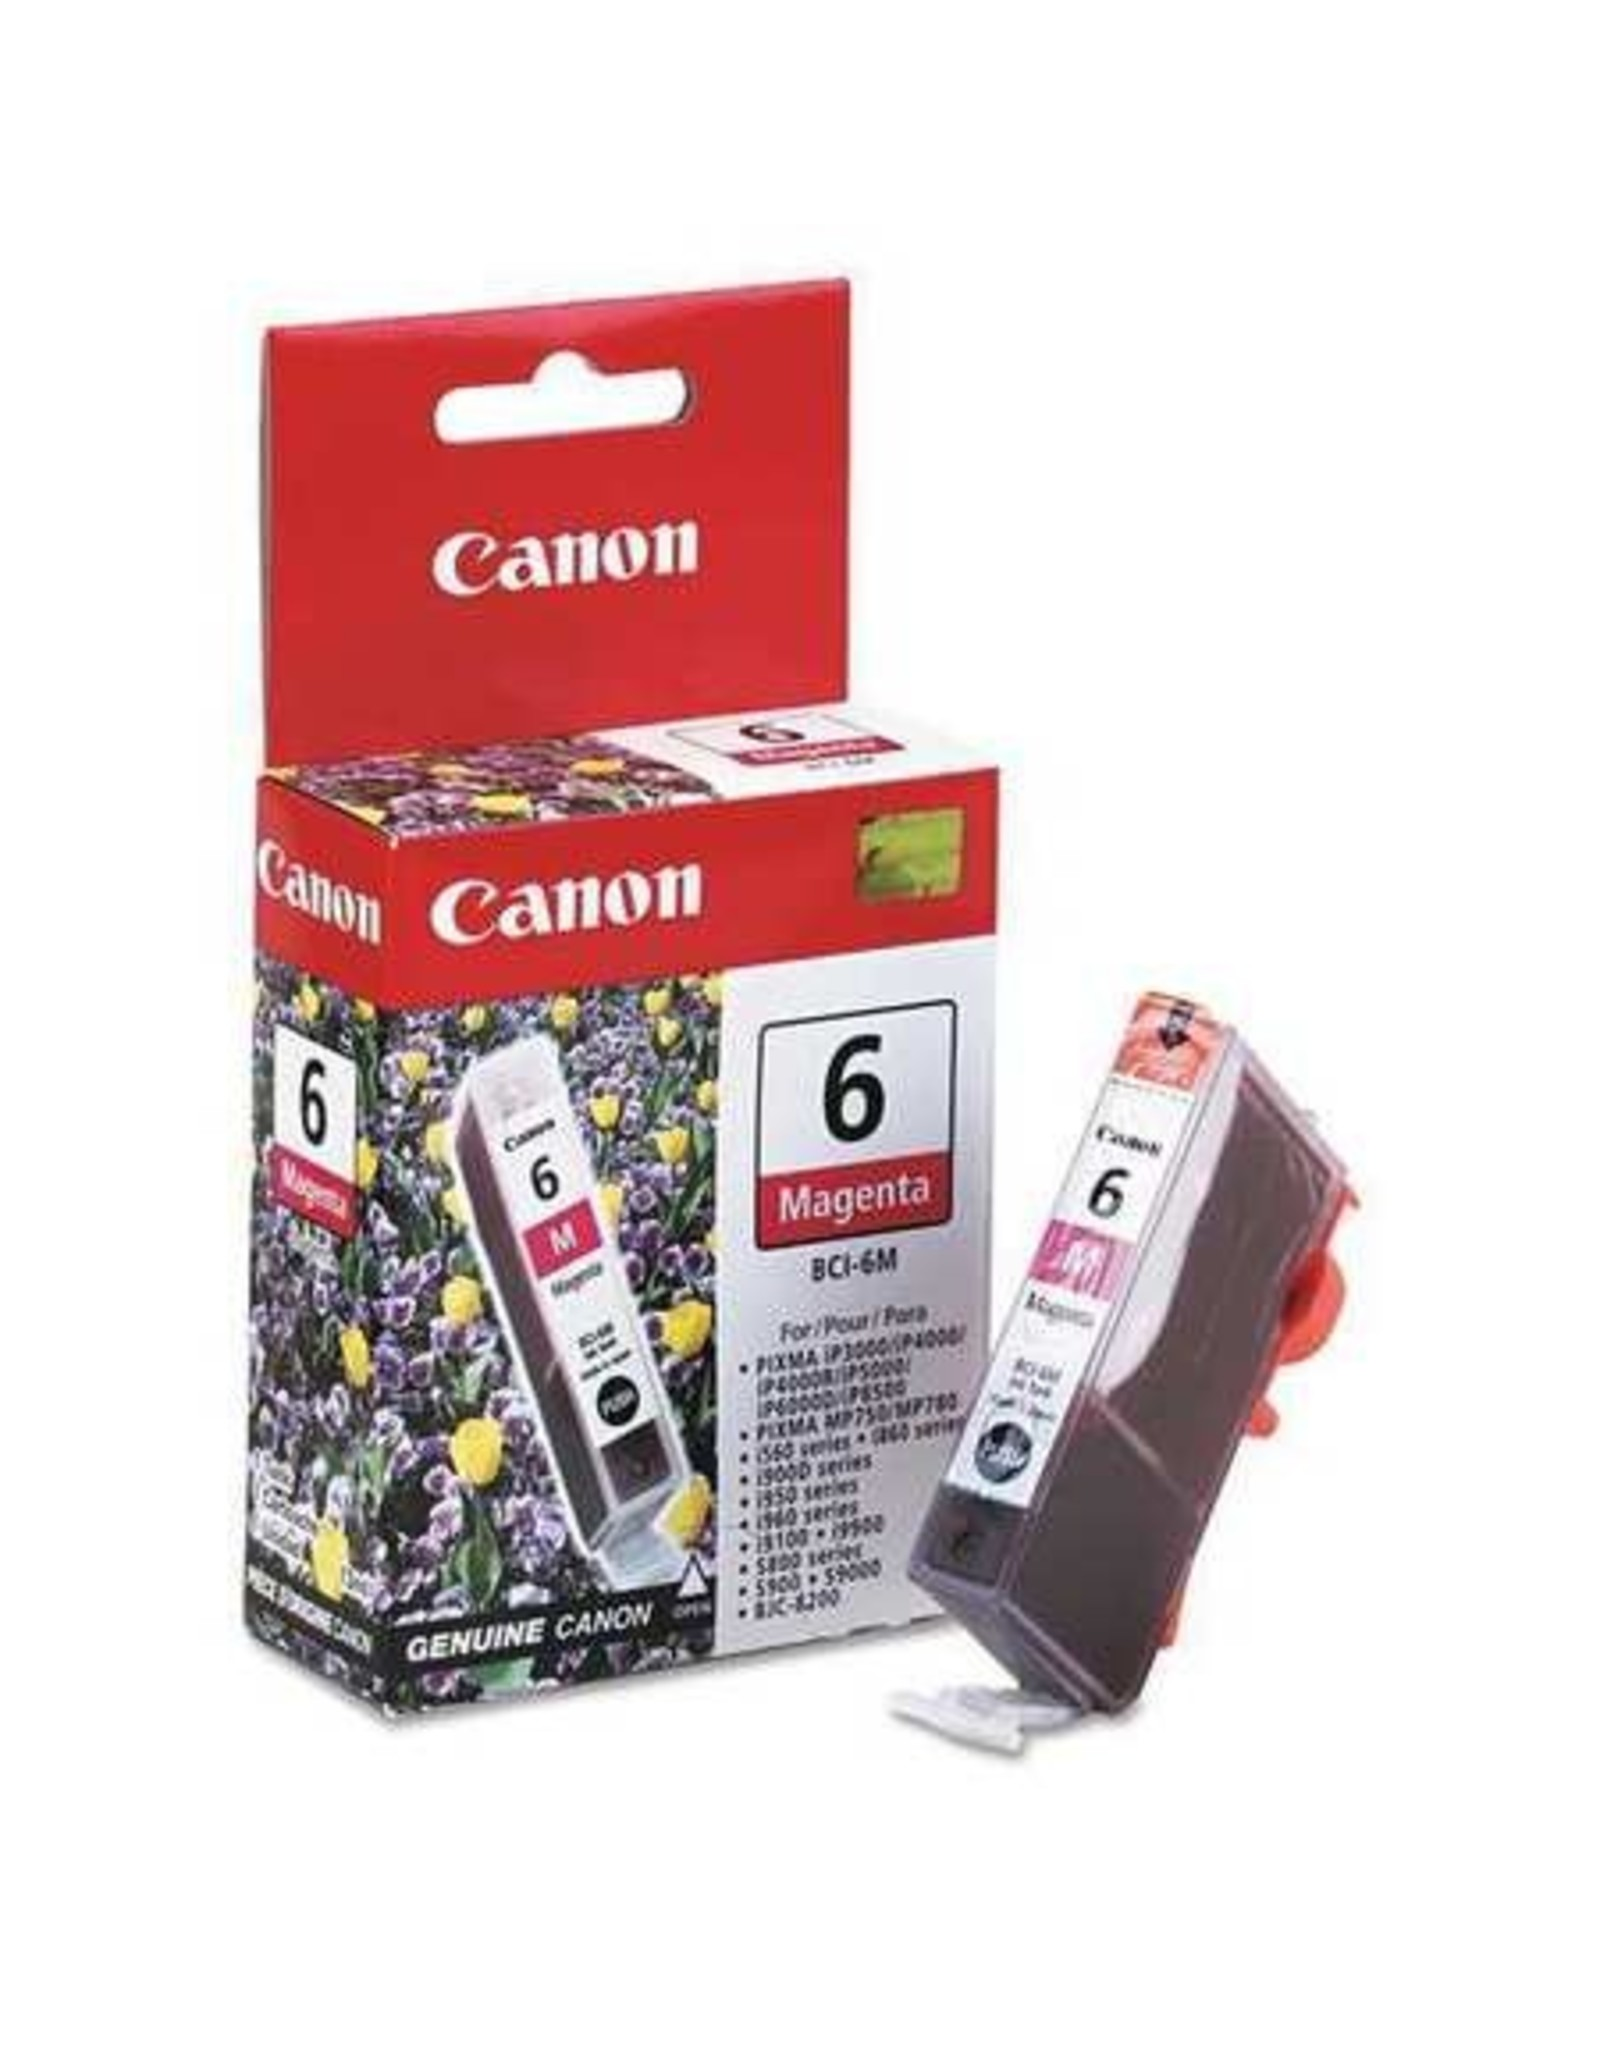 SYNNEX INK TANK-CANON #BCI6M MAGENTA